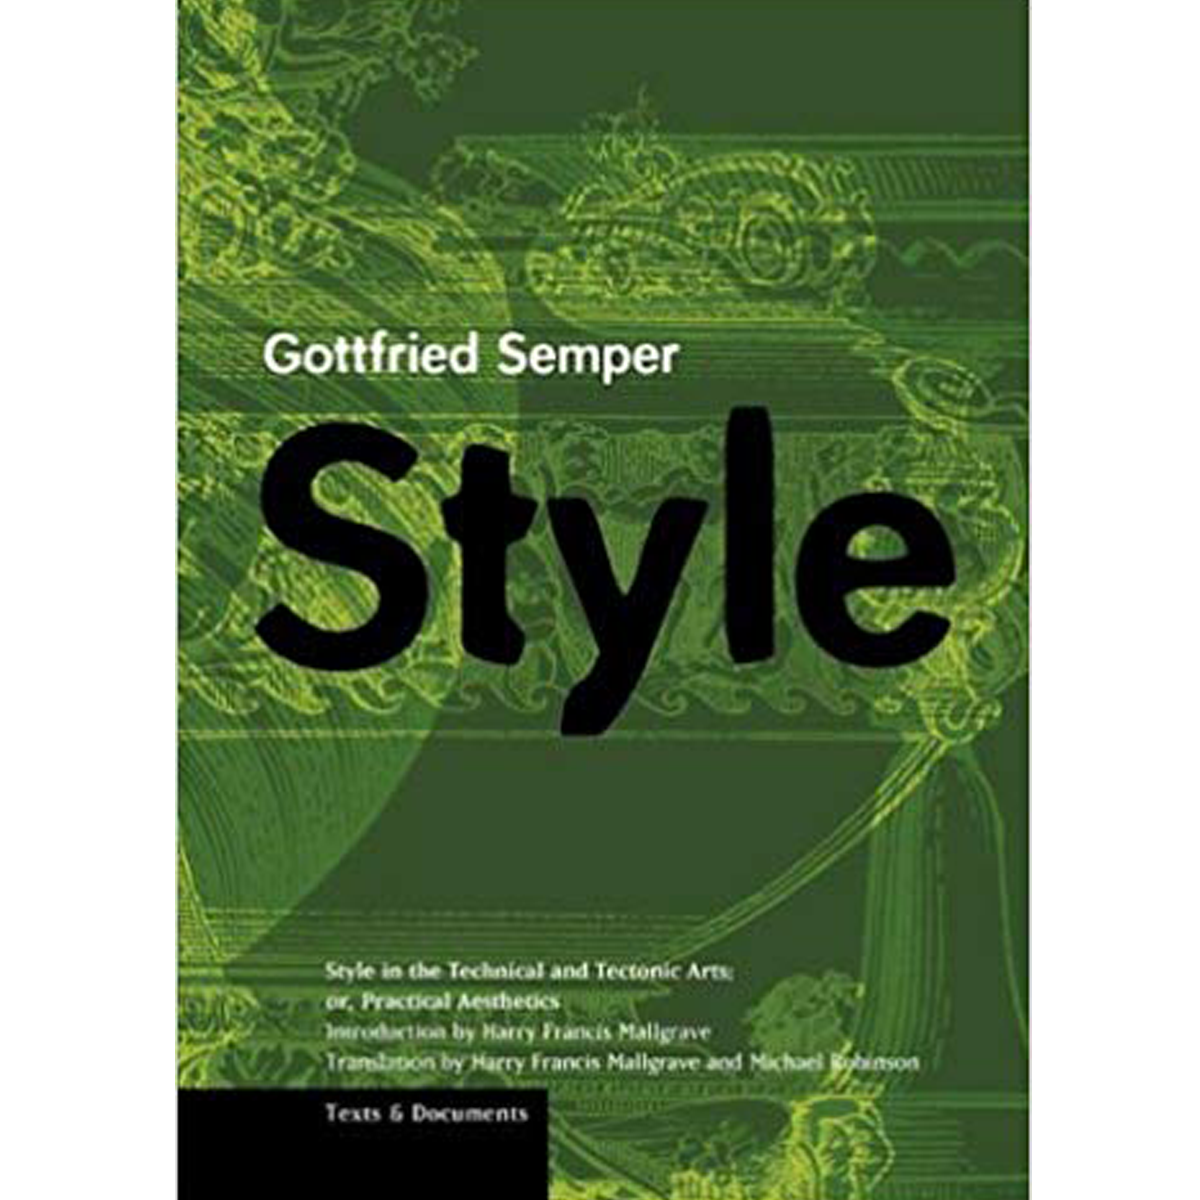 Style in the Technical and Tectonic Arts; or, Practical Aesthetics